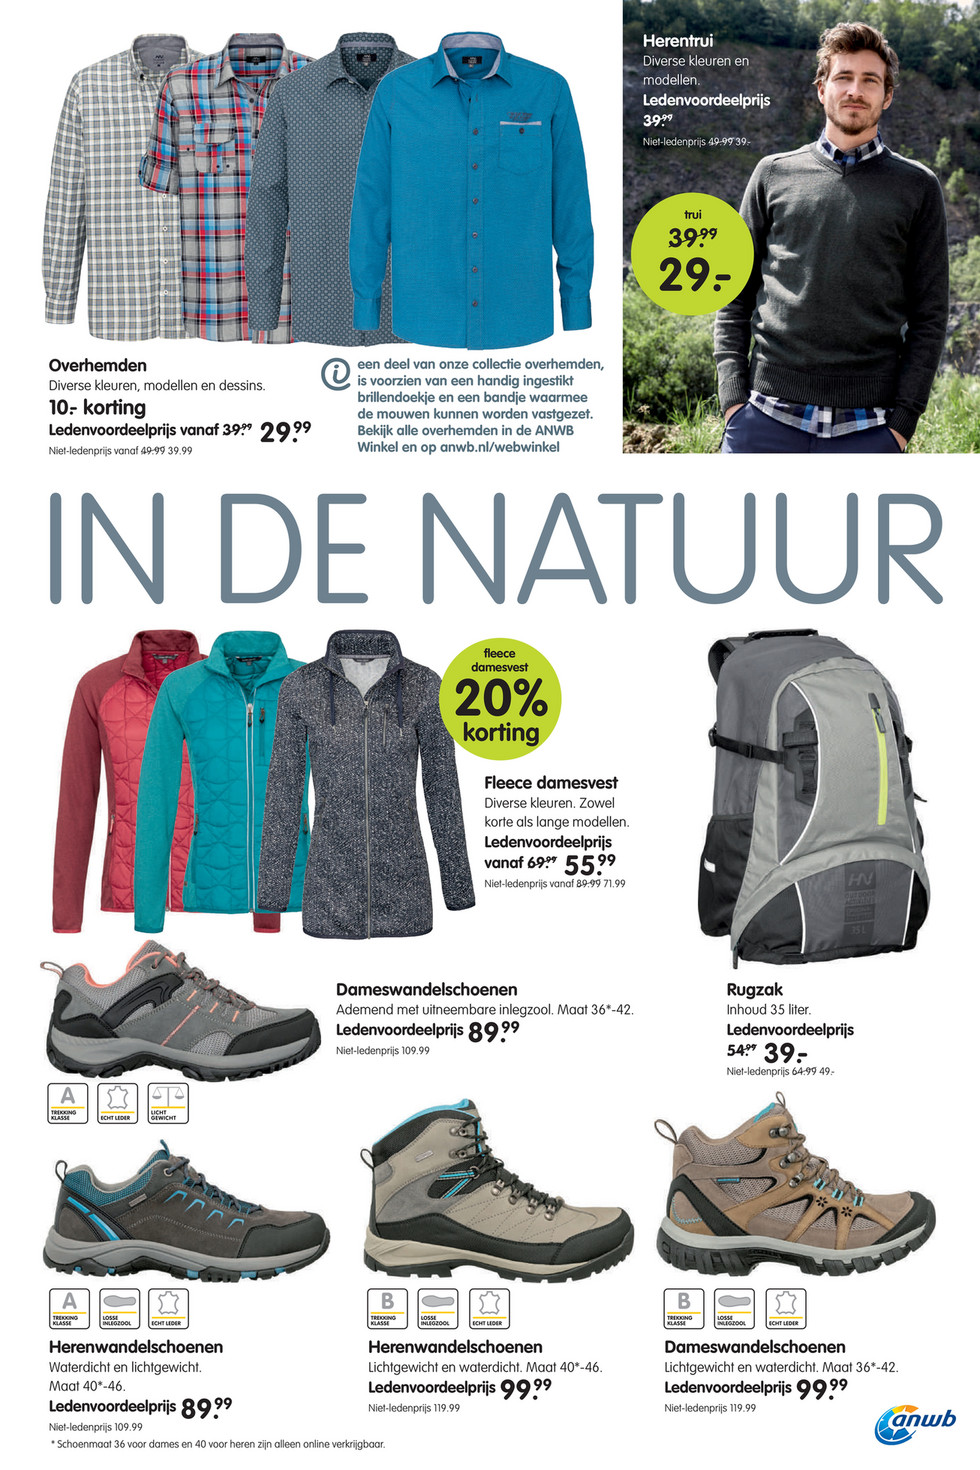 Reclame nu.nl anwb human nature special Page 6 7